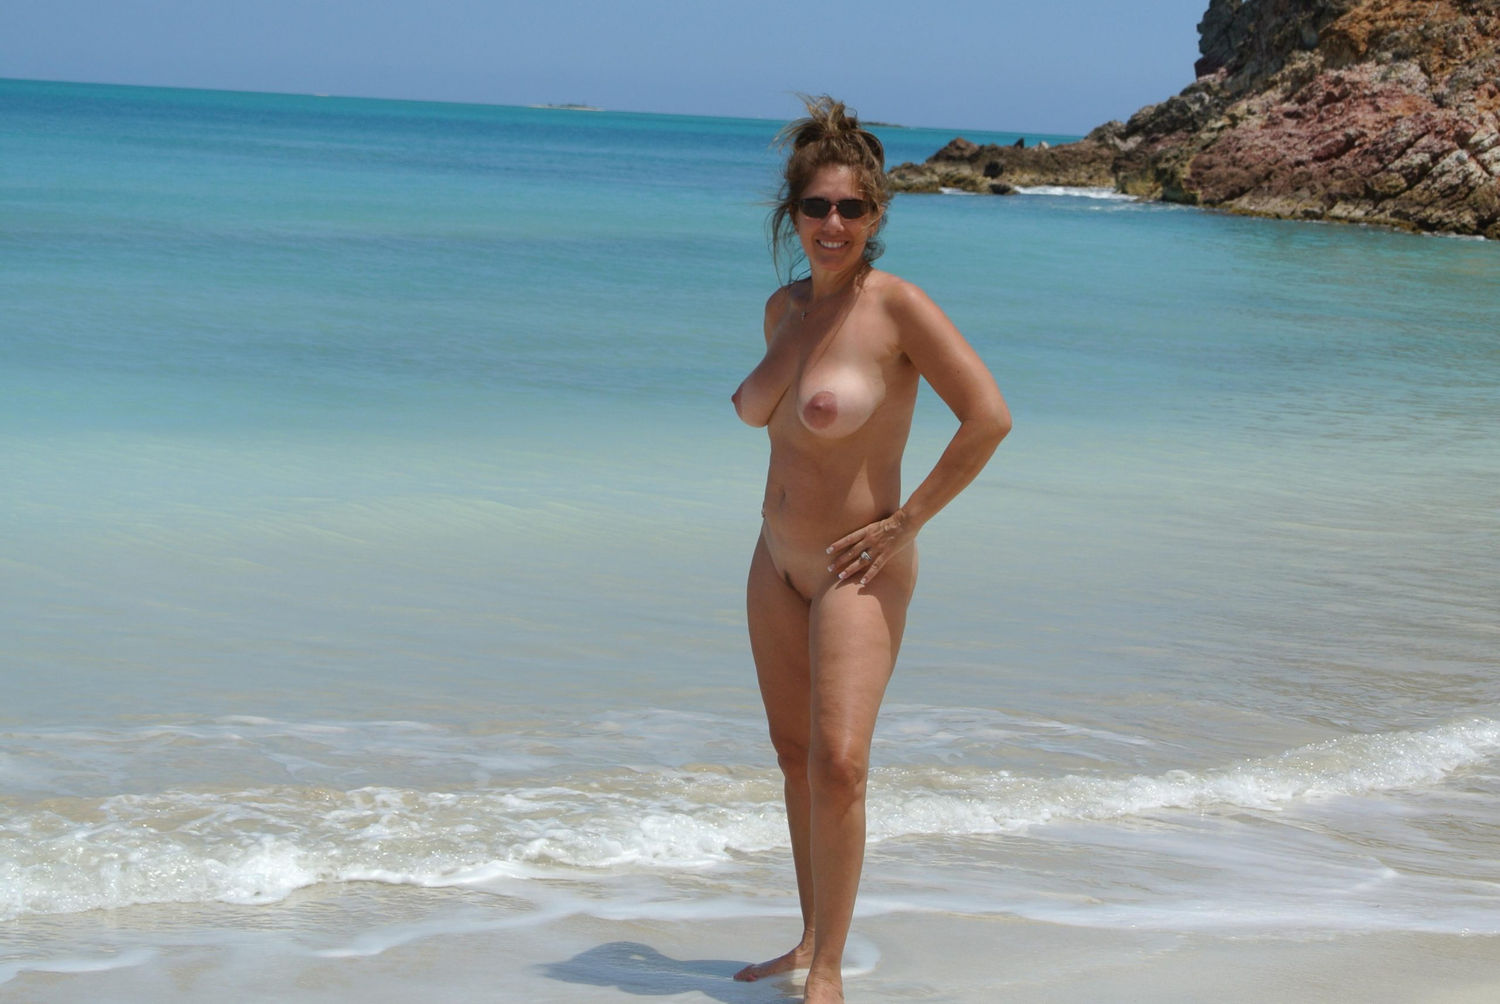 Pretty wife demonstrates nice tits and pussy on the beach